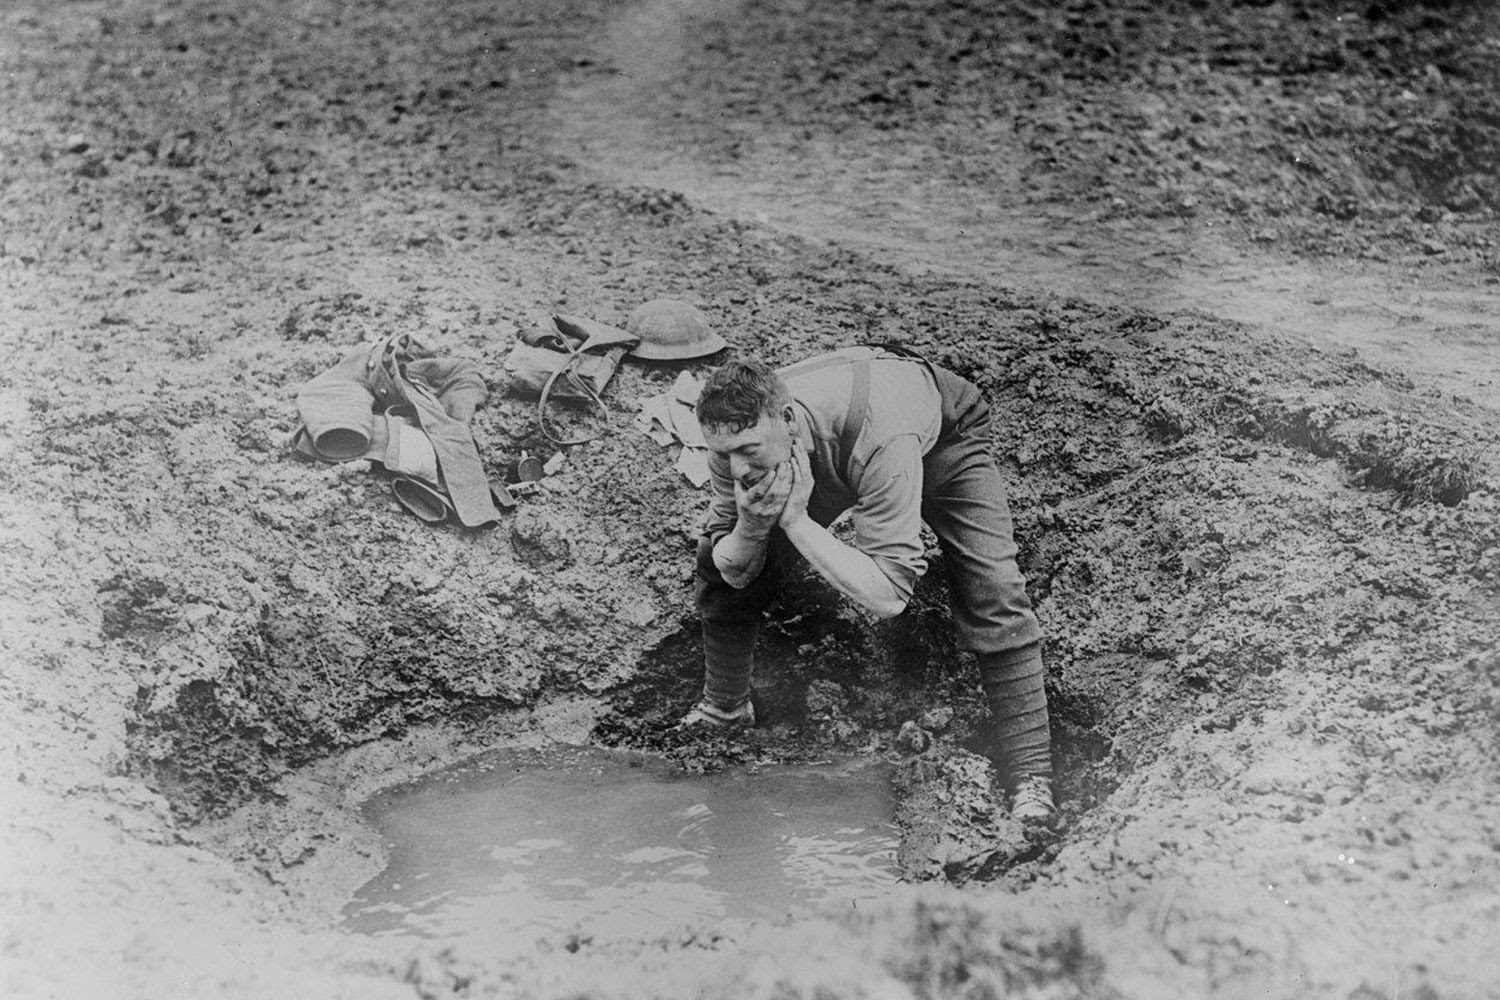 Climate anomaly caused WW I mud, flu pandemic: study